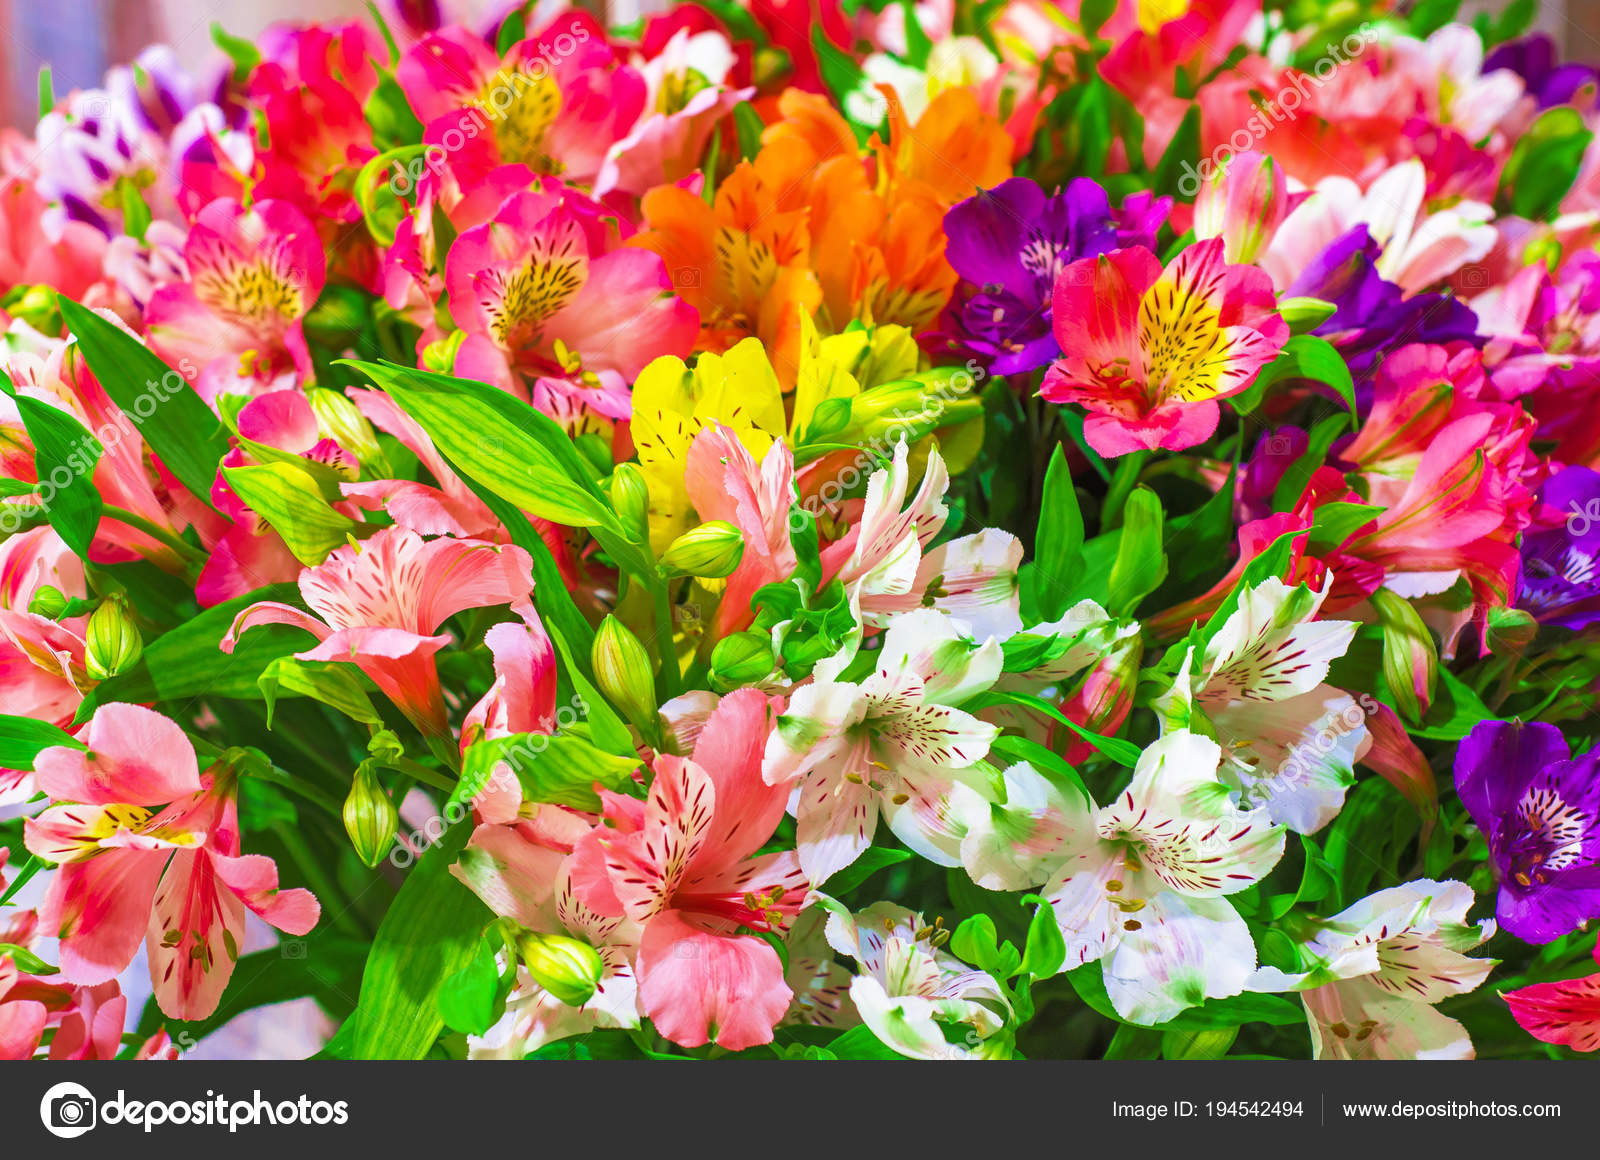 Multicolored flowers in a bouquet beautiful nature background multicolored flowers in a bouquet beautiful nature background stock photo izmirmasajfo